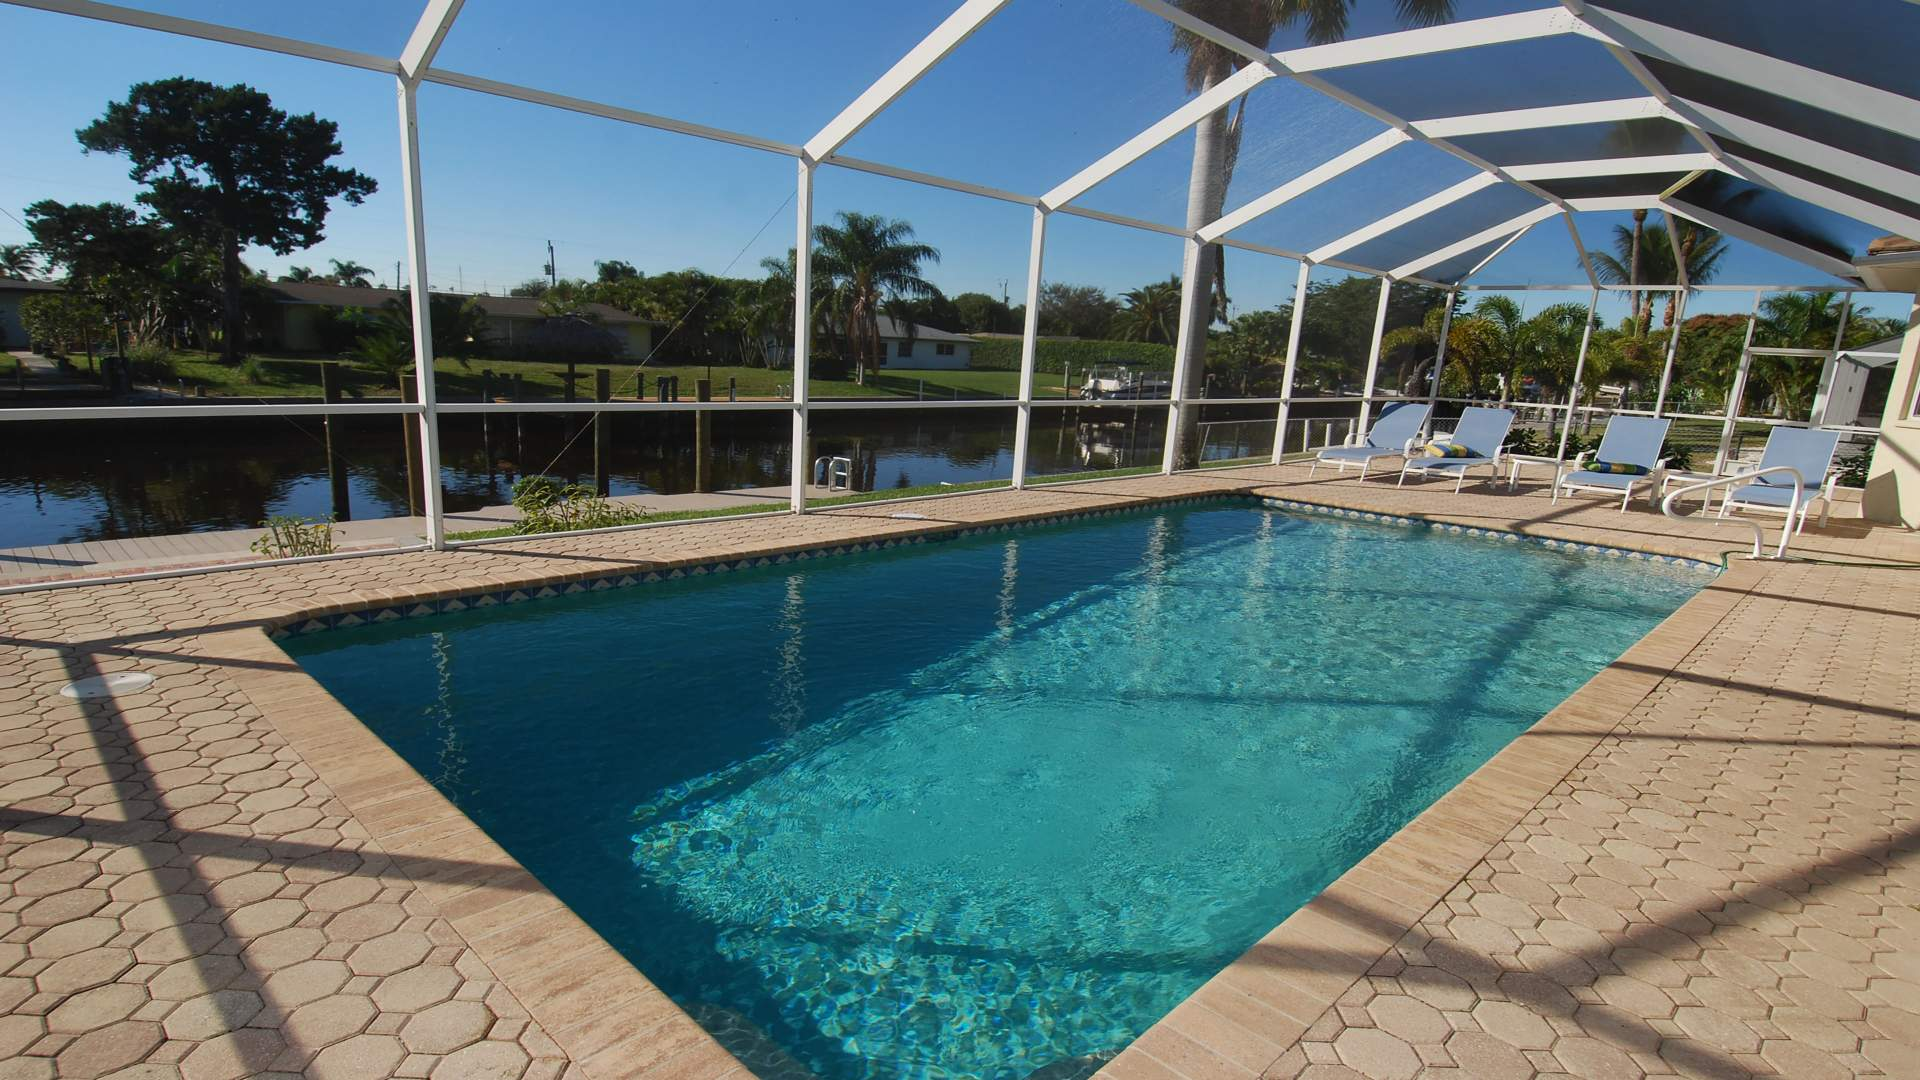 The electrically heated pool can be enjoyed throughout the year